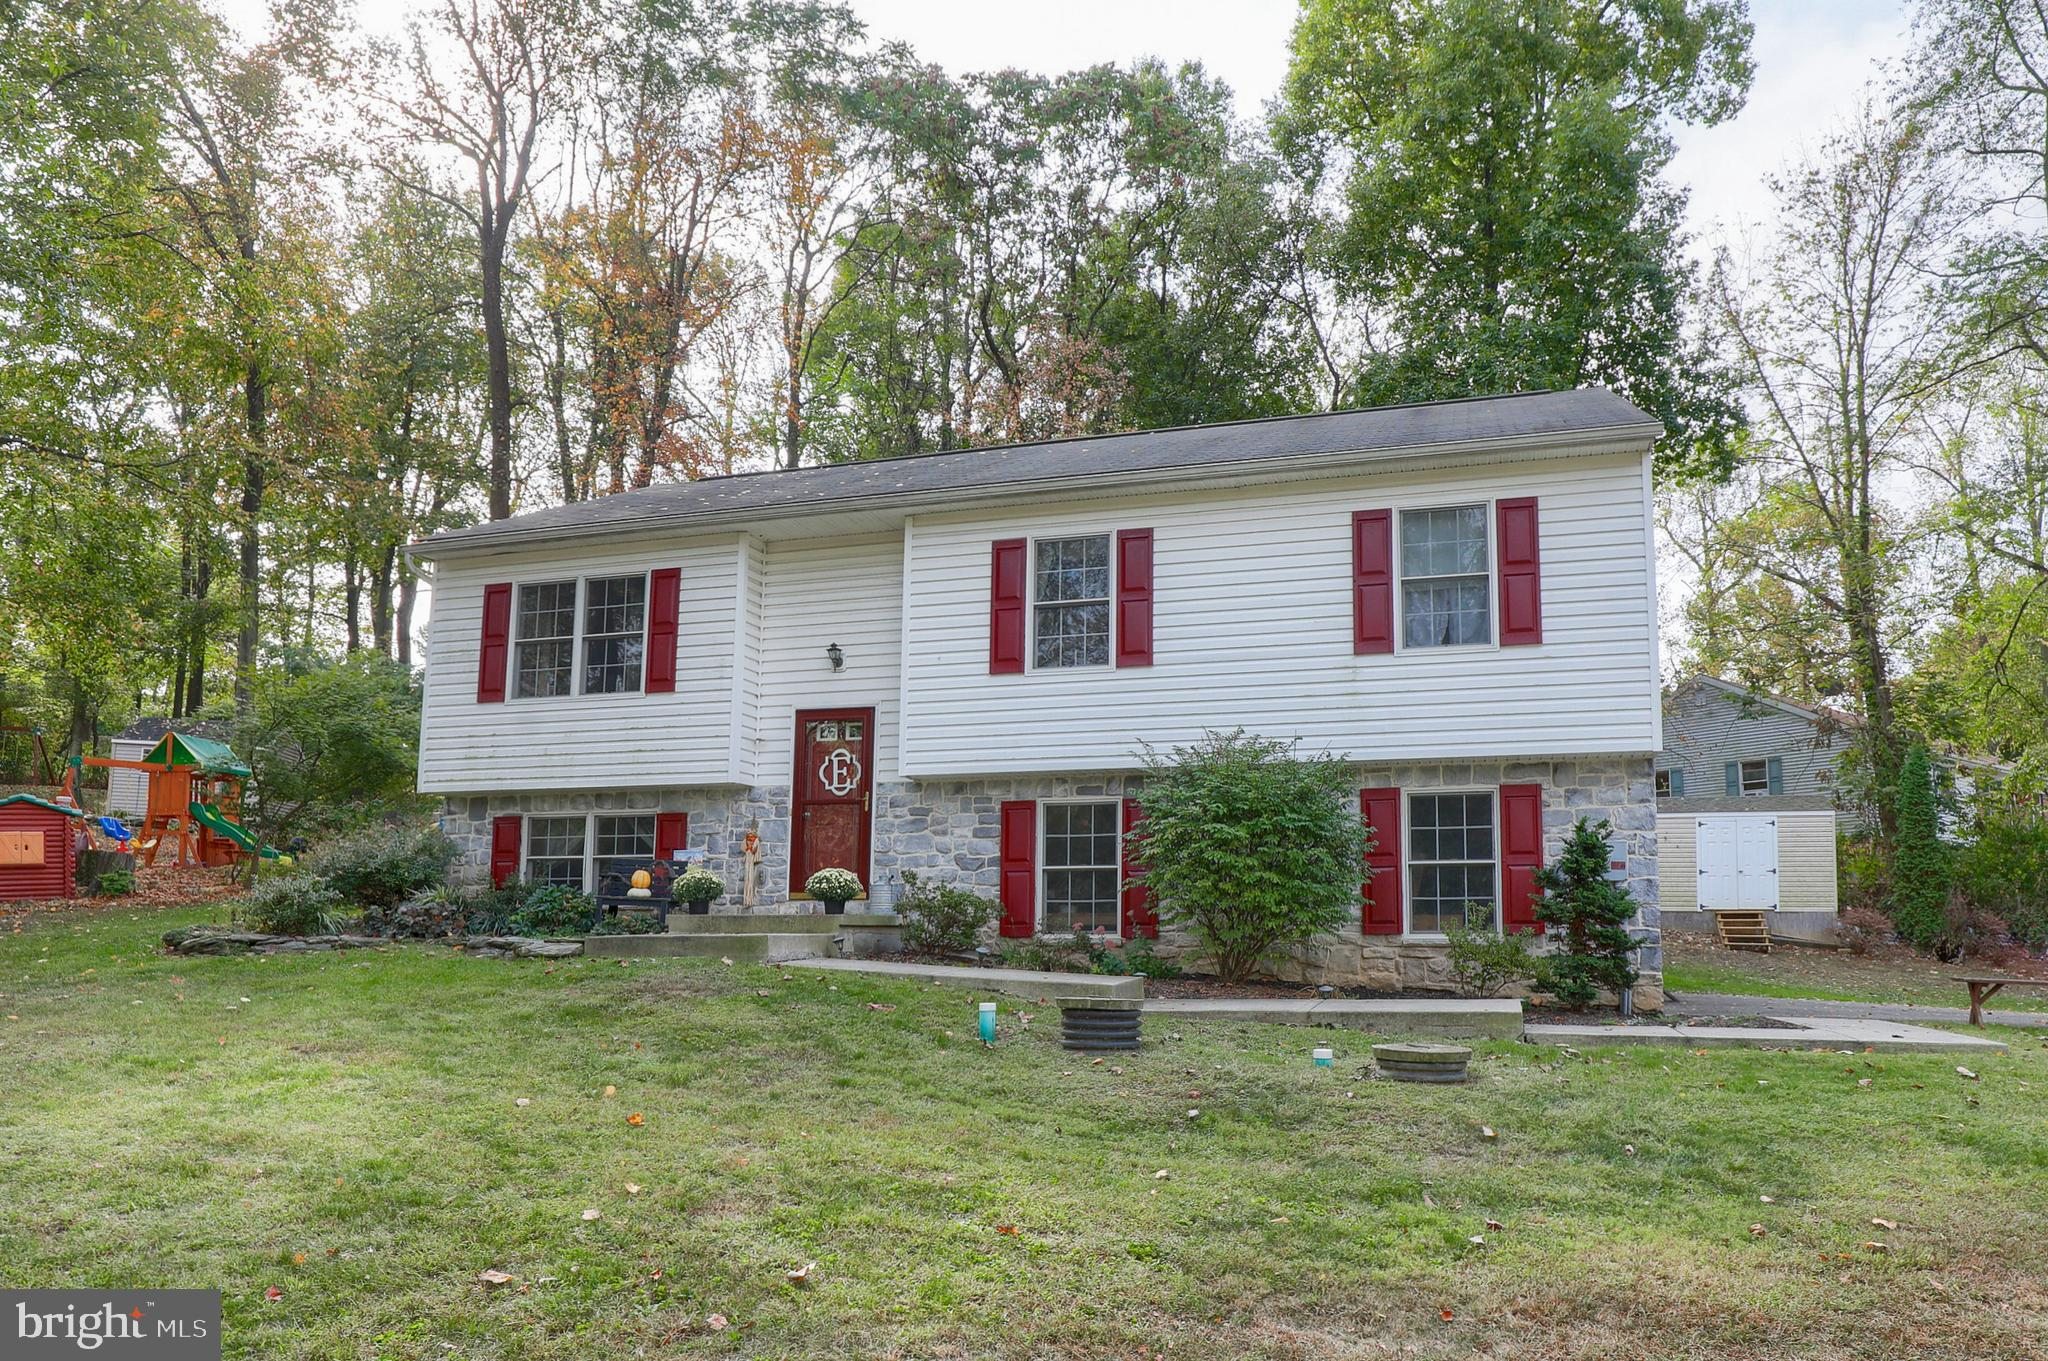 446 MARTIC HEIGHTS DRIVE, HOLTWOOD, PA 17532